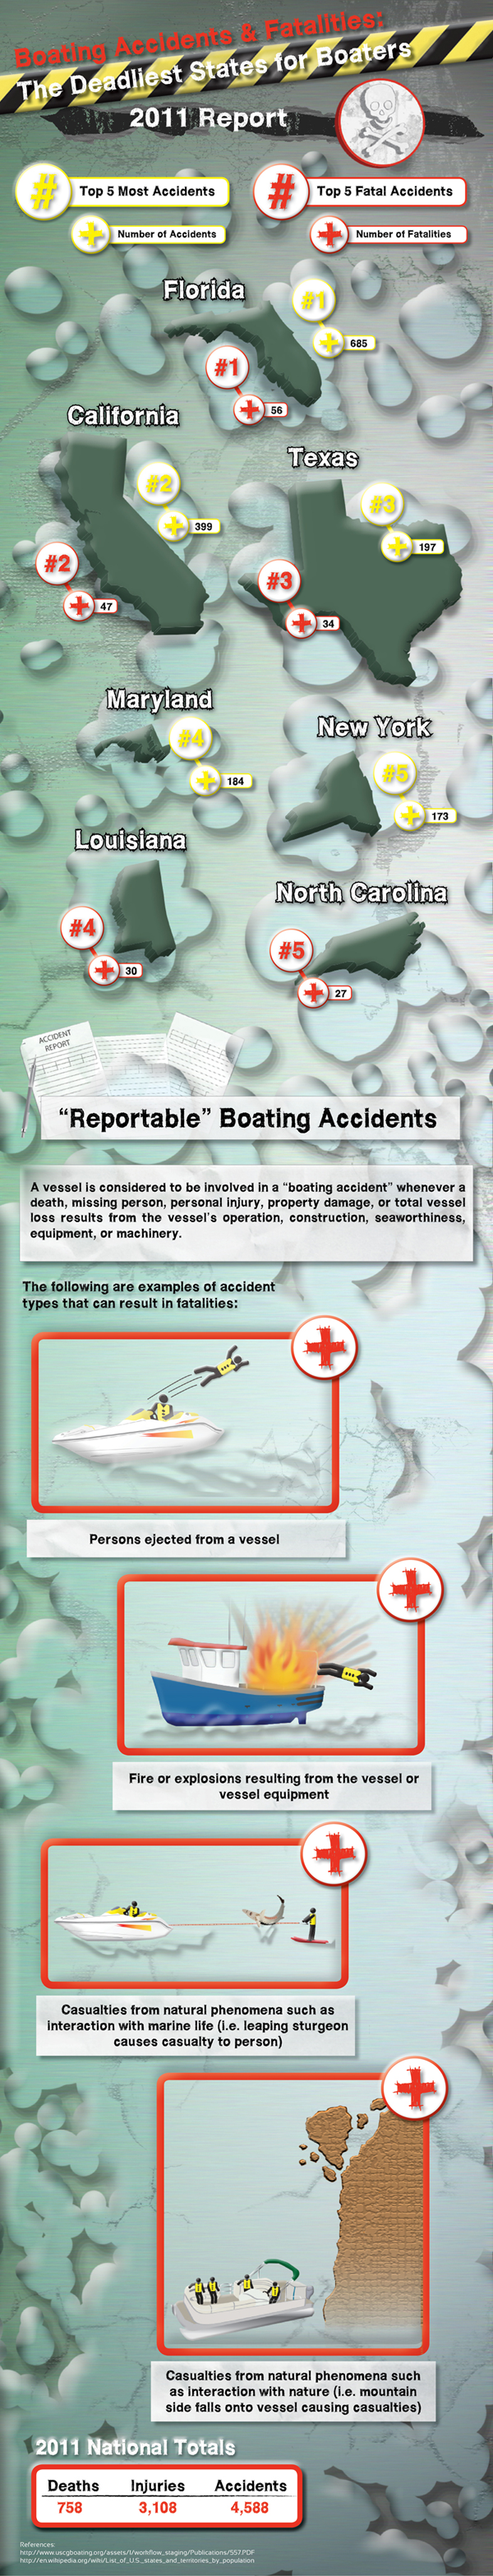 The Deadliest States For Boaters